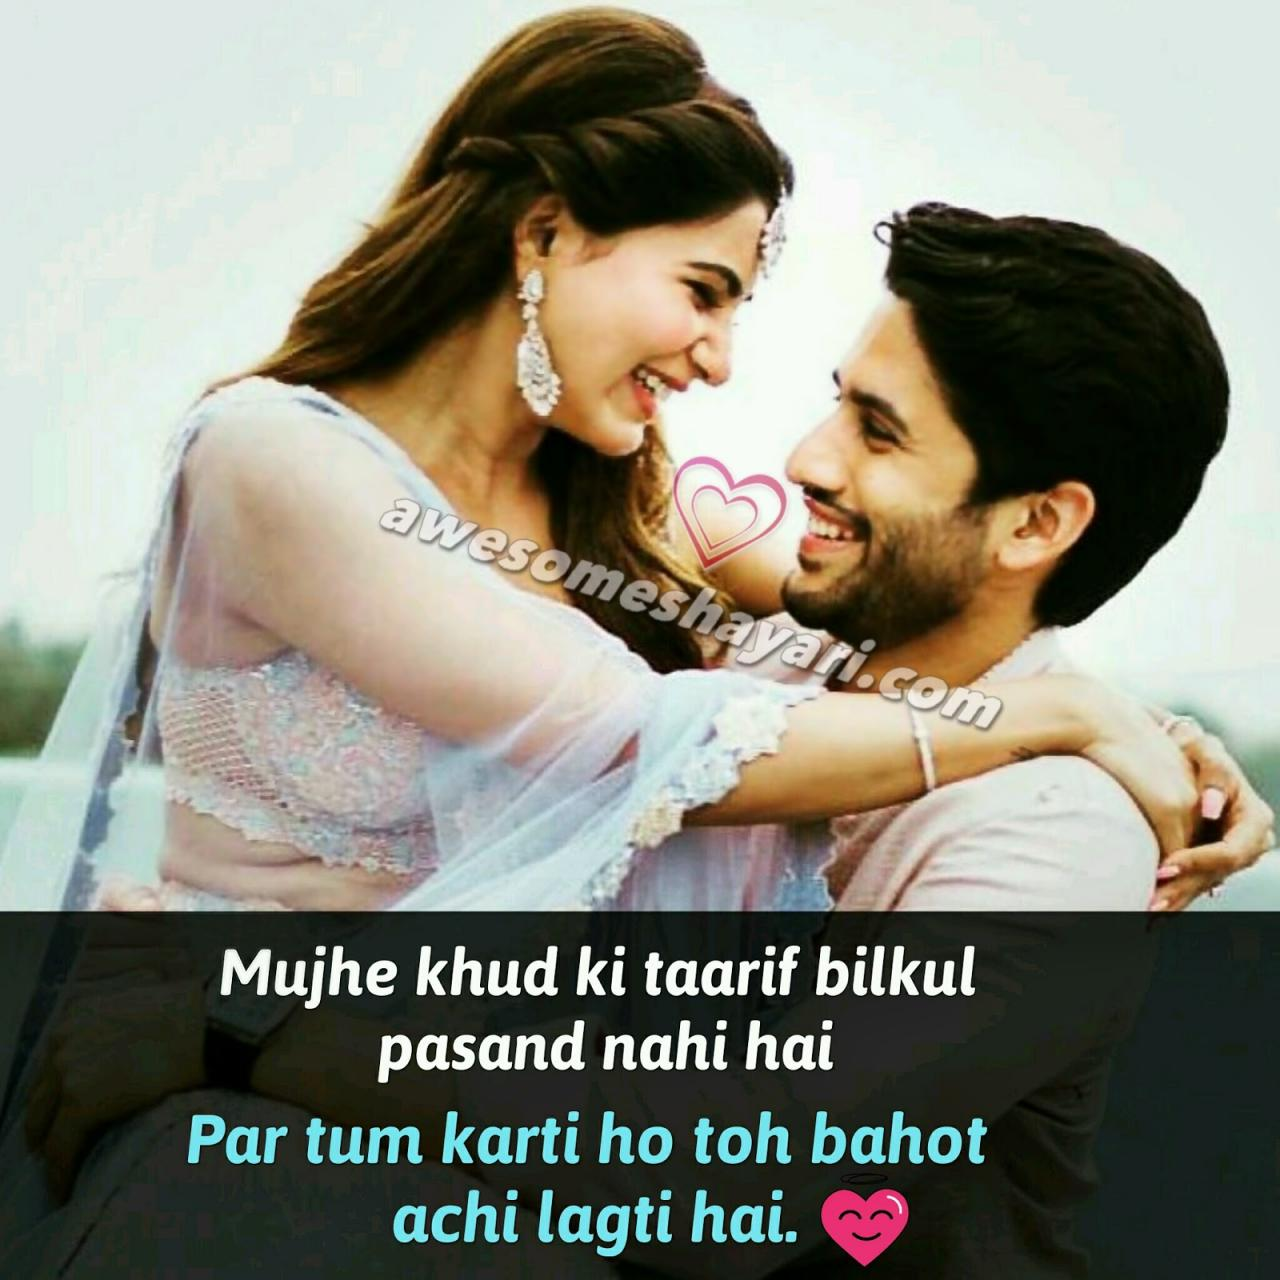 Romantic Love Shayari Awesome Shayari New Love Shayari